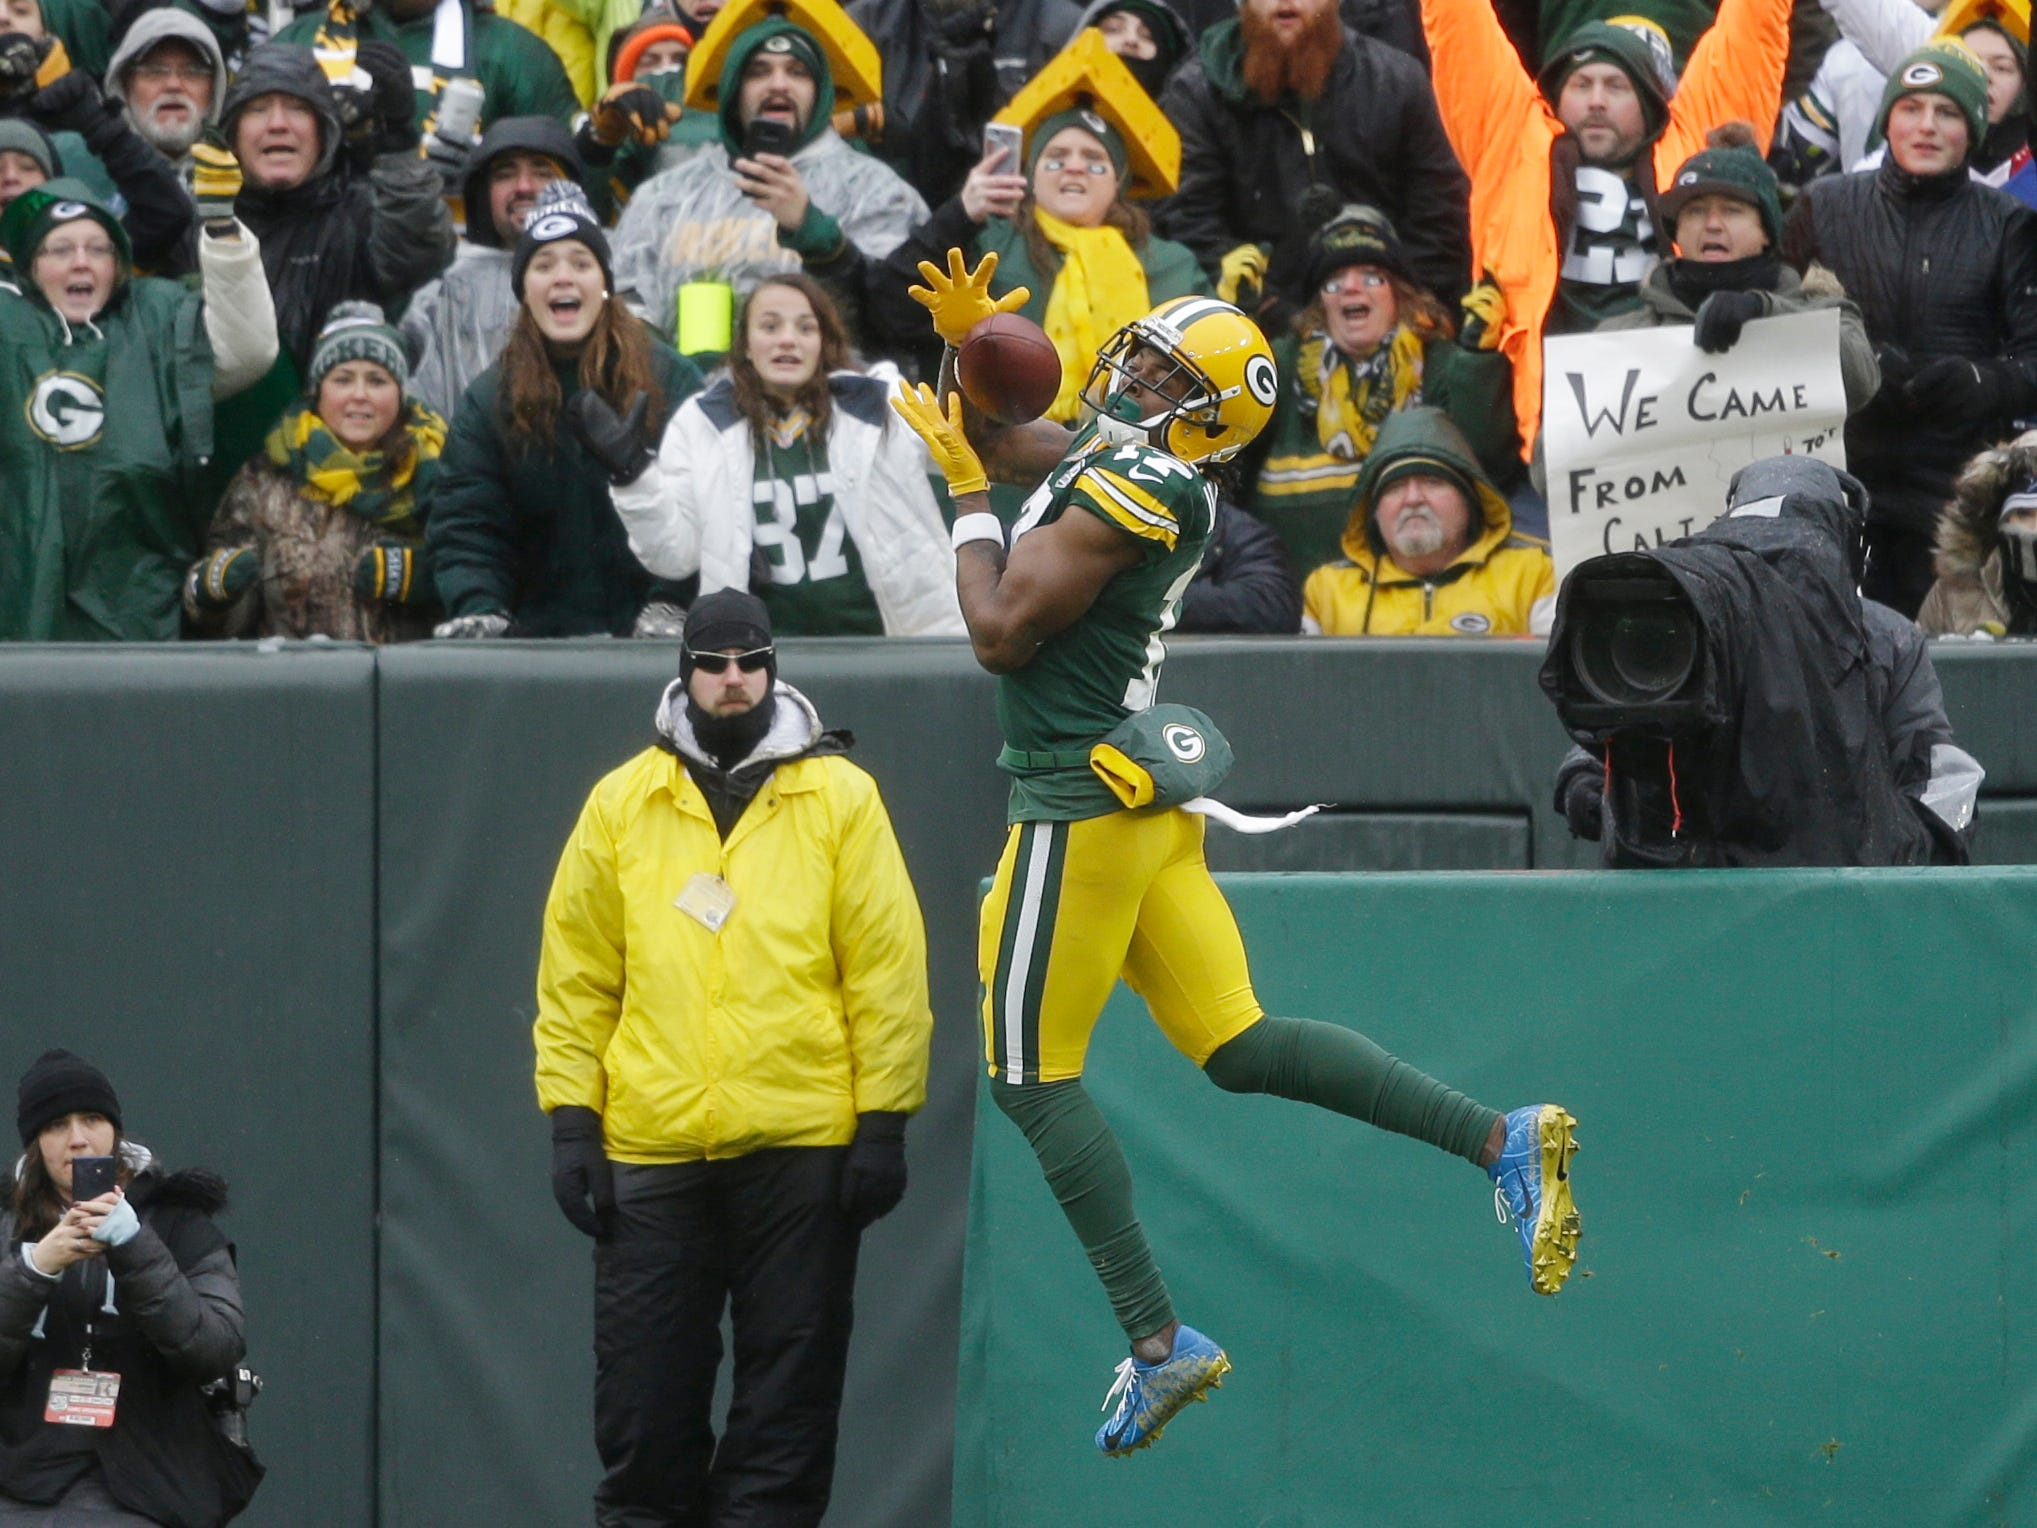 Green Bay Packers wide receiver Davante Adams makes a catch for a touchdown during the first half of an NFL football game against the Arizona Cardinals, Sunday, Dec. 2, 2018, in Green Bay, Wis. (AP Photo/Jeffrey Phelps)